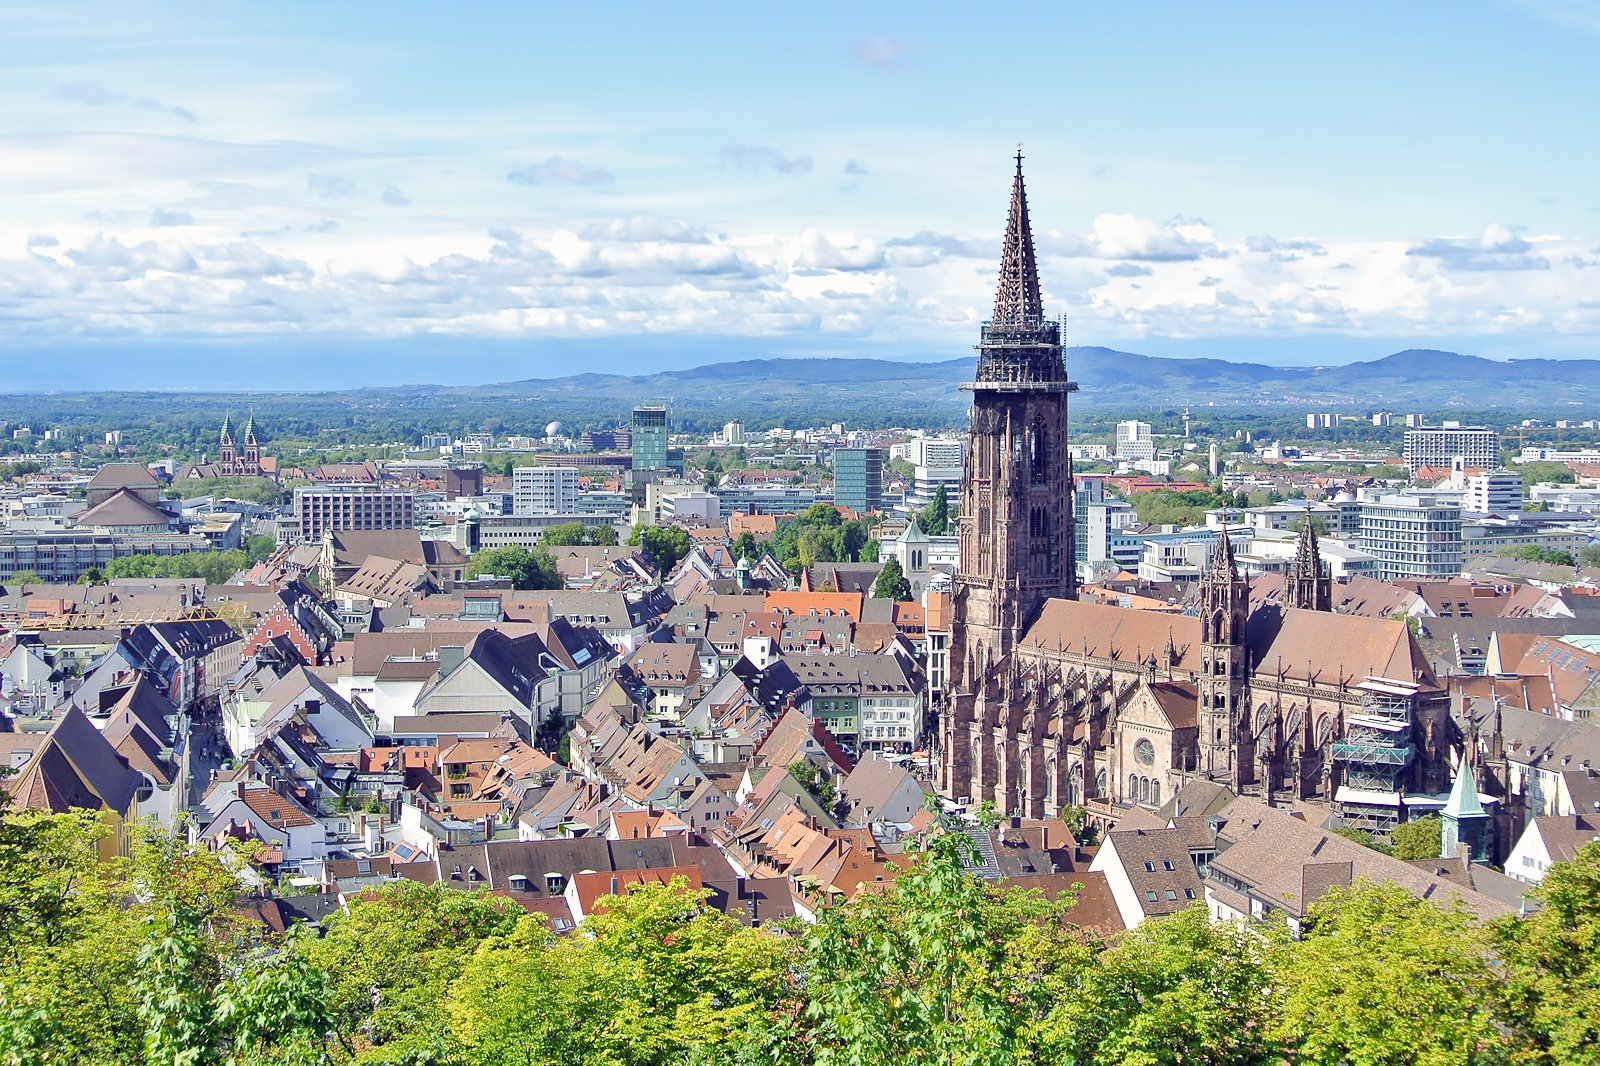 10 Best Things to Do in Freiburg - What is Freiburg Most ... Freiburg on black forest, zürich, lake constance,